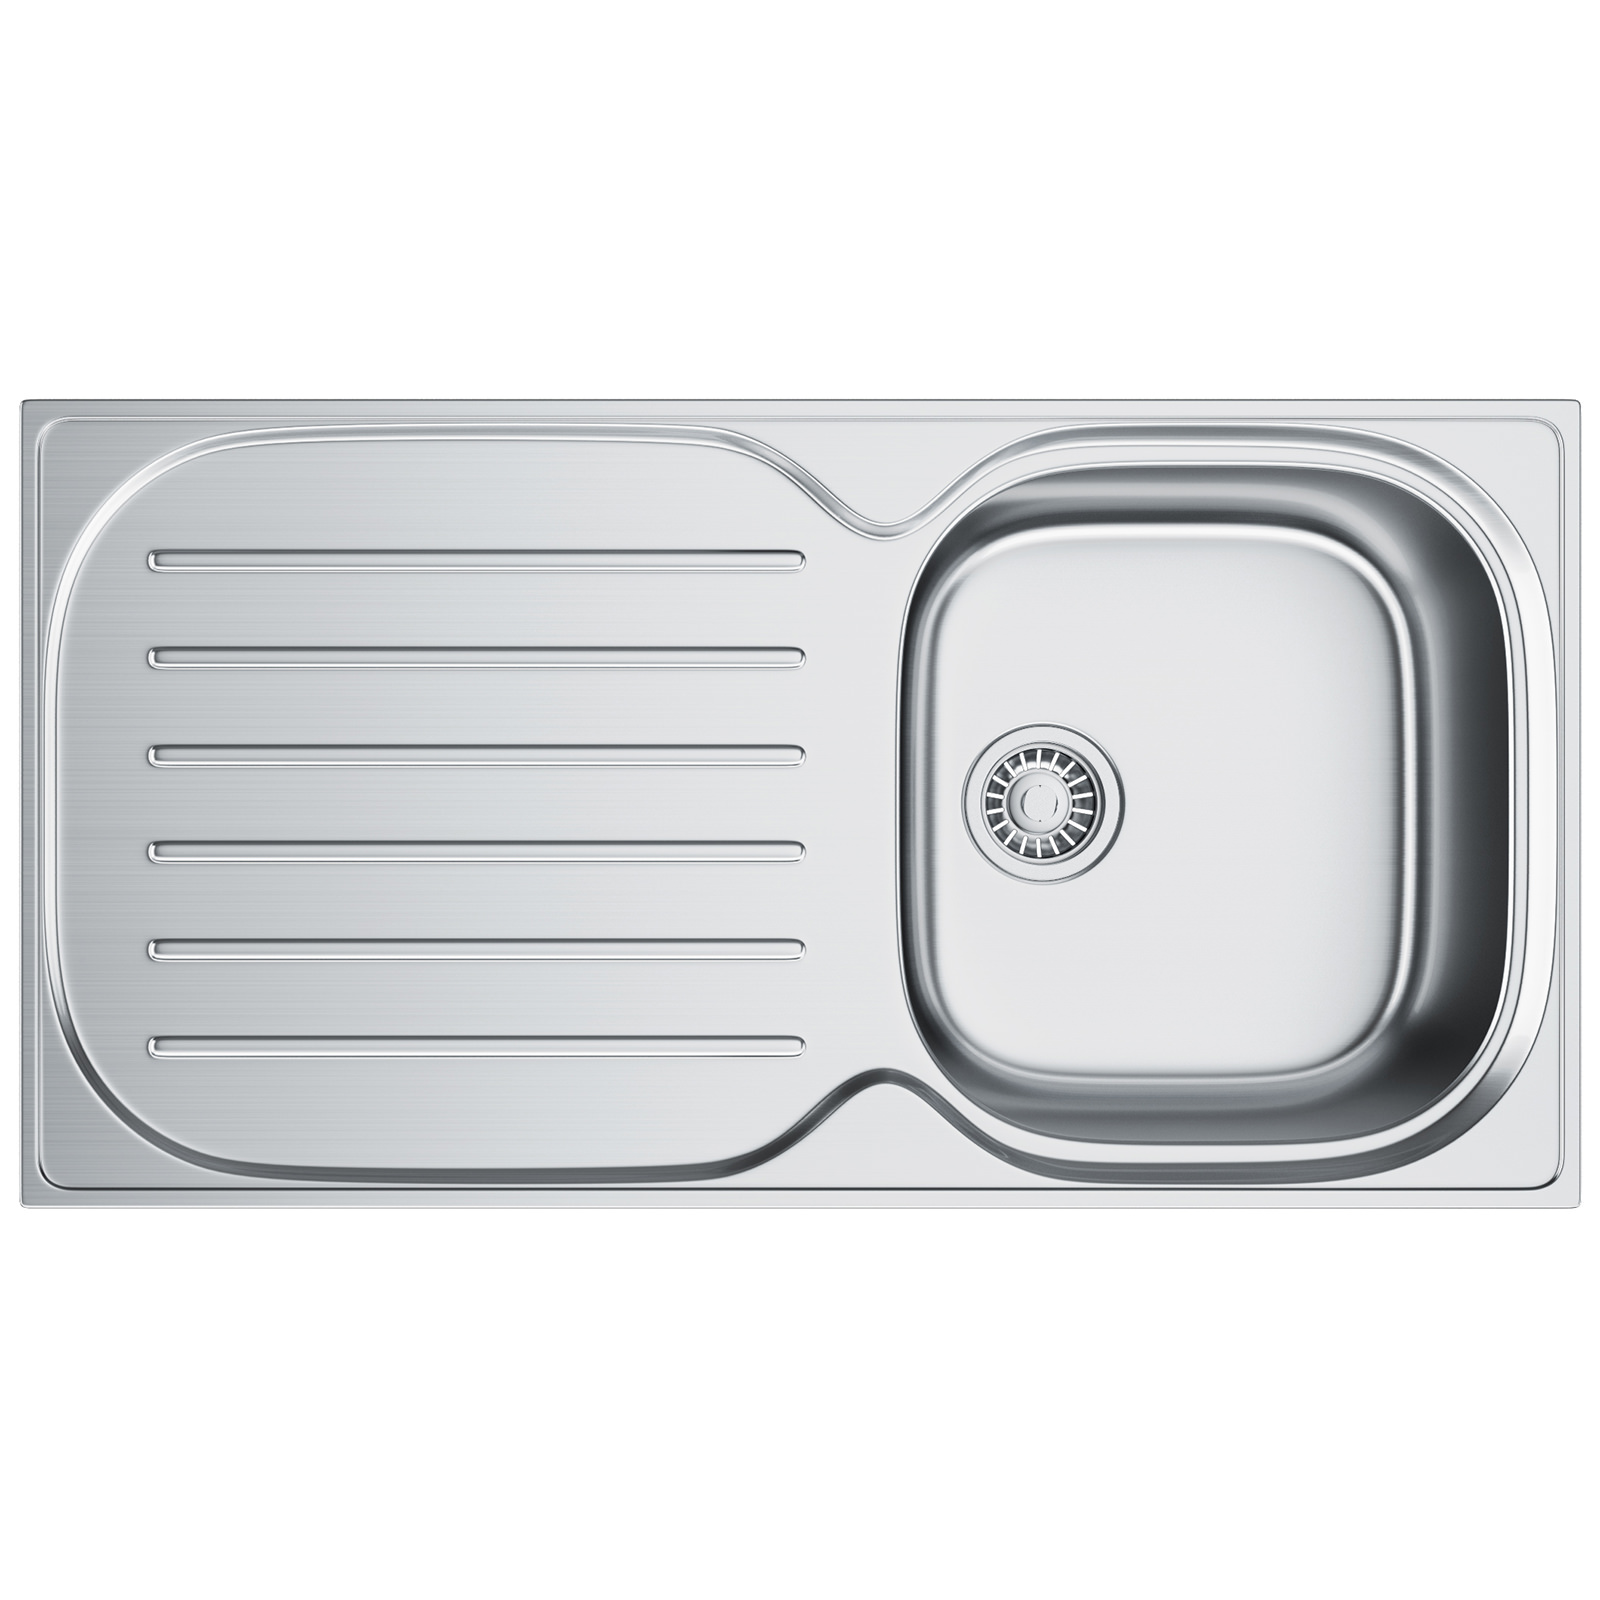 Franke compact plus cpx p 611 965 stainless steel inset sink 1010182322 bom